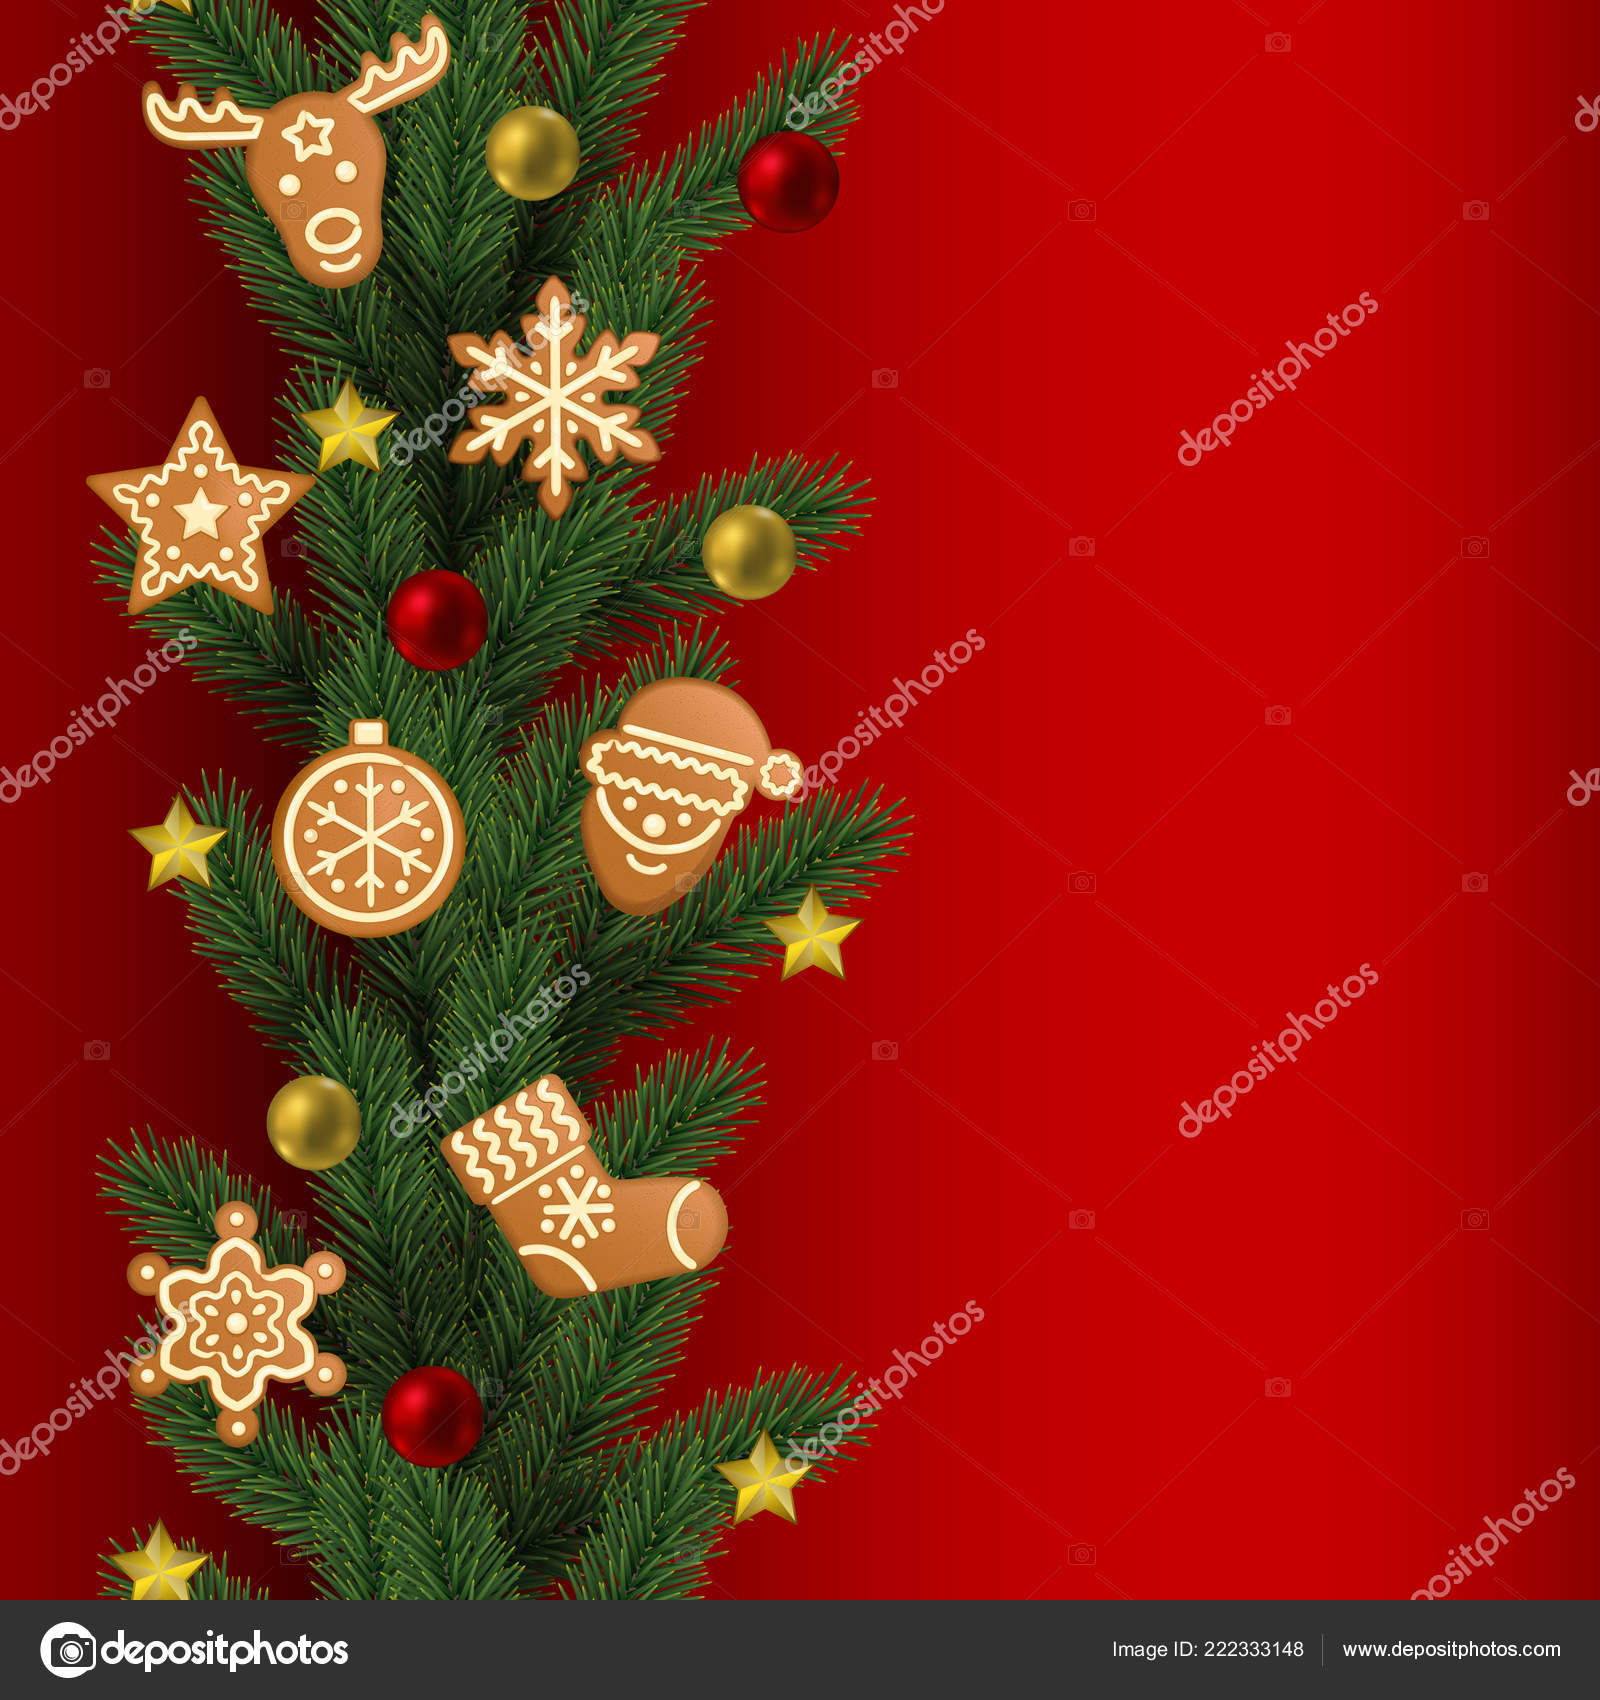 christmas and new year seamless border with gingerbread and toys on red background repeat winter holiday pattern for textile prints wallpaper